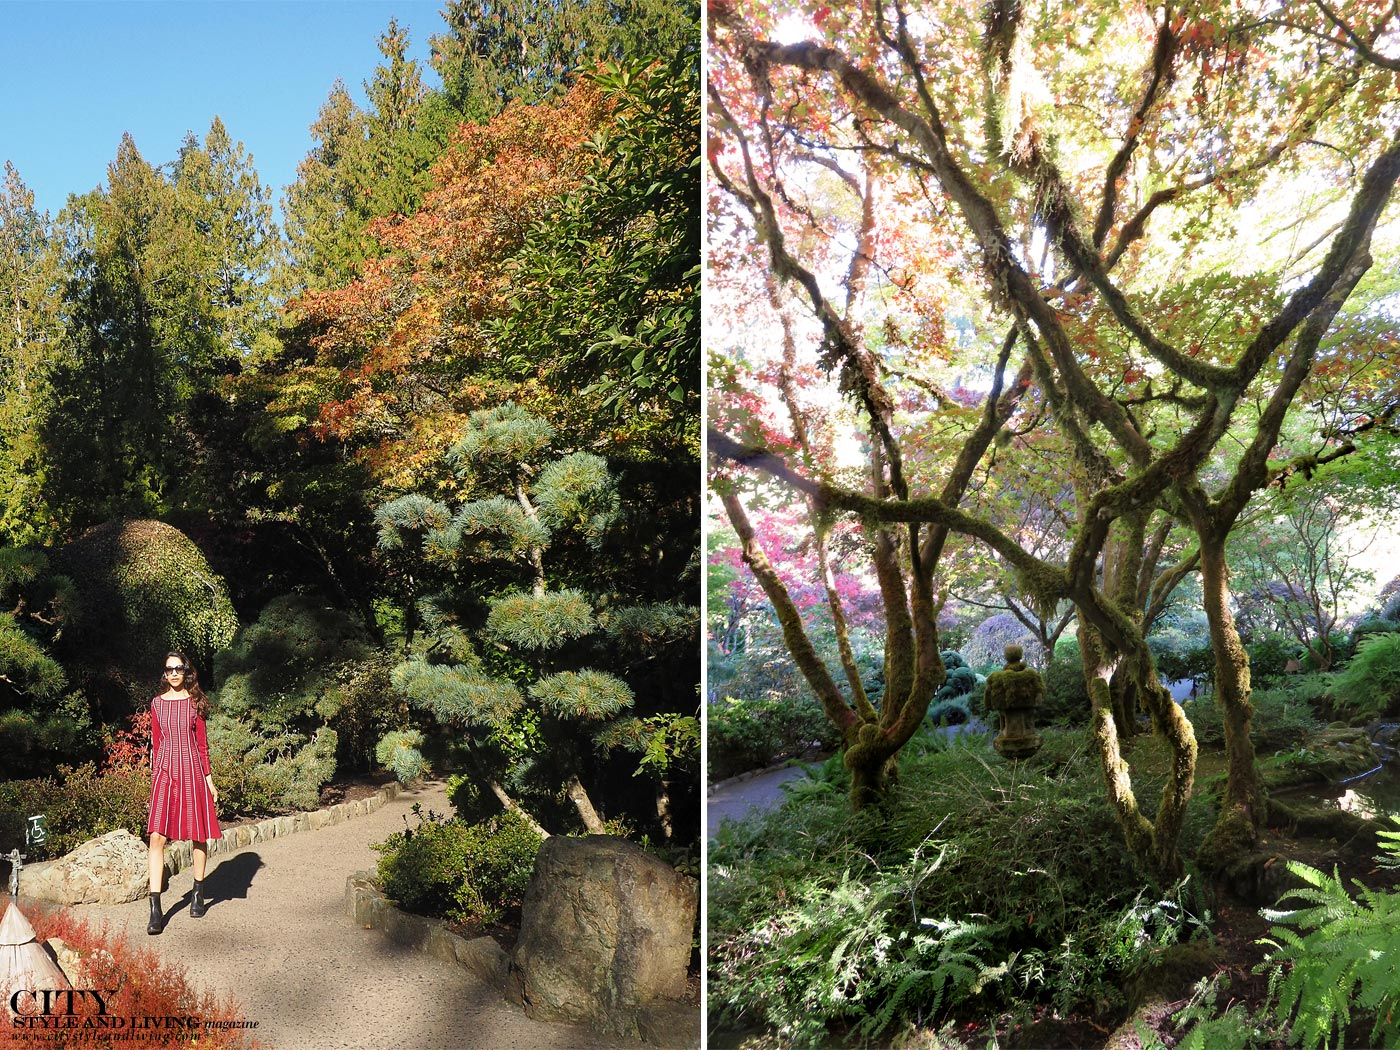 City style and living magazine Editors Notebook style fashion blogger Butchart Japanese Gardens BCBG Max Azria fall foliage, trees